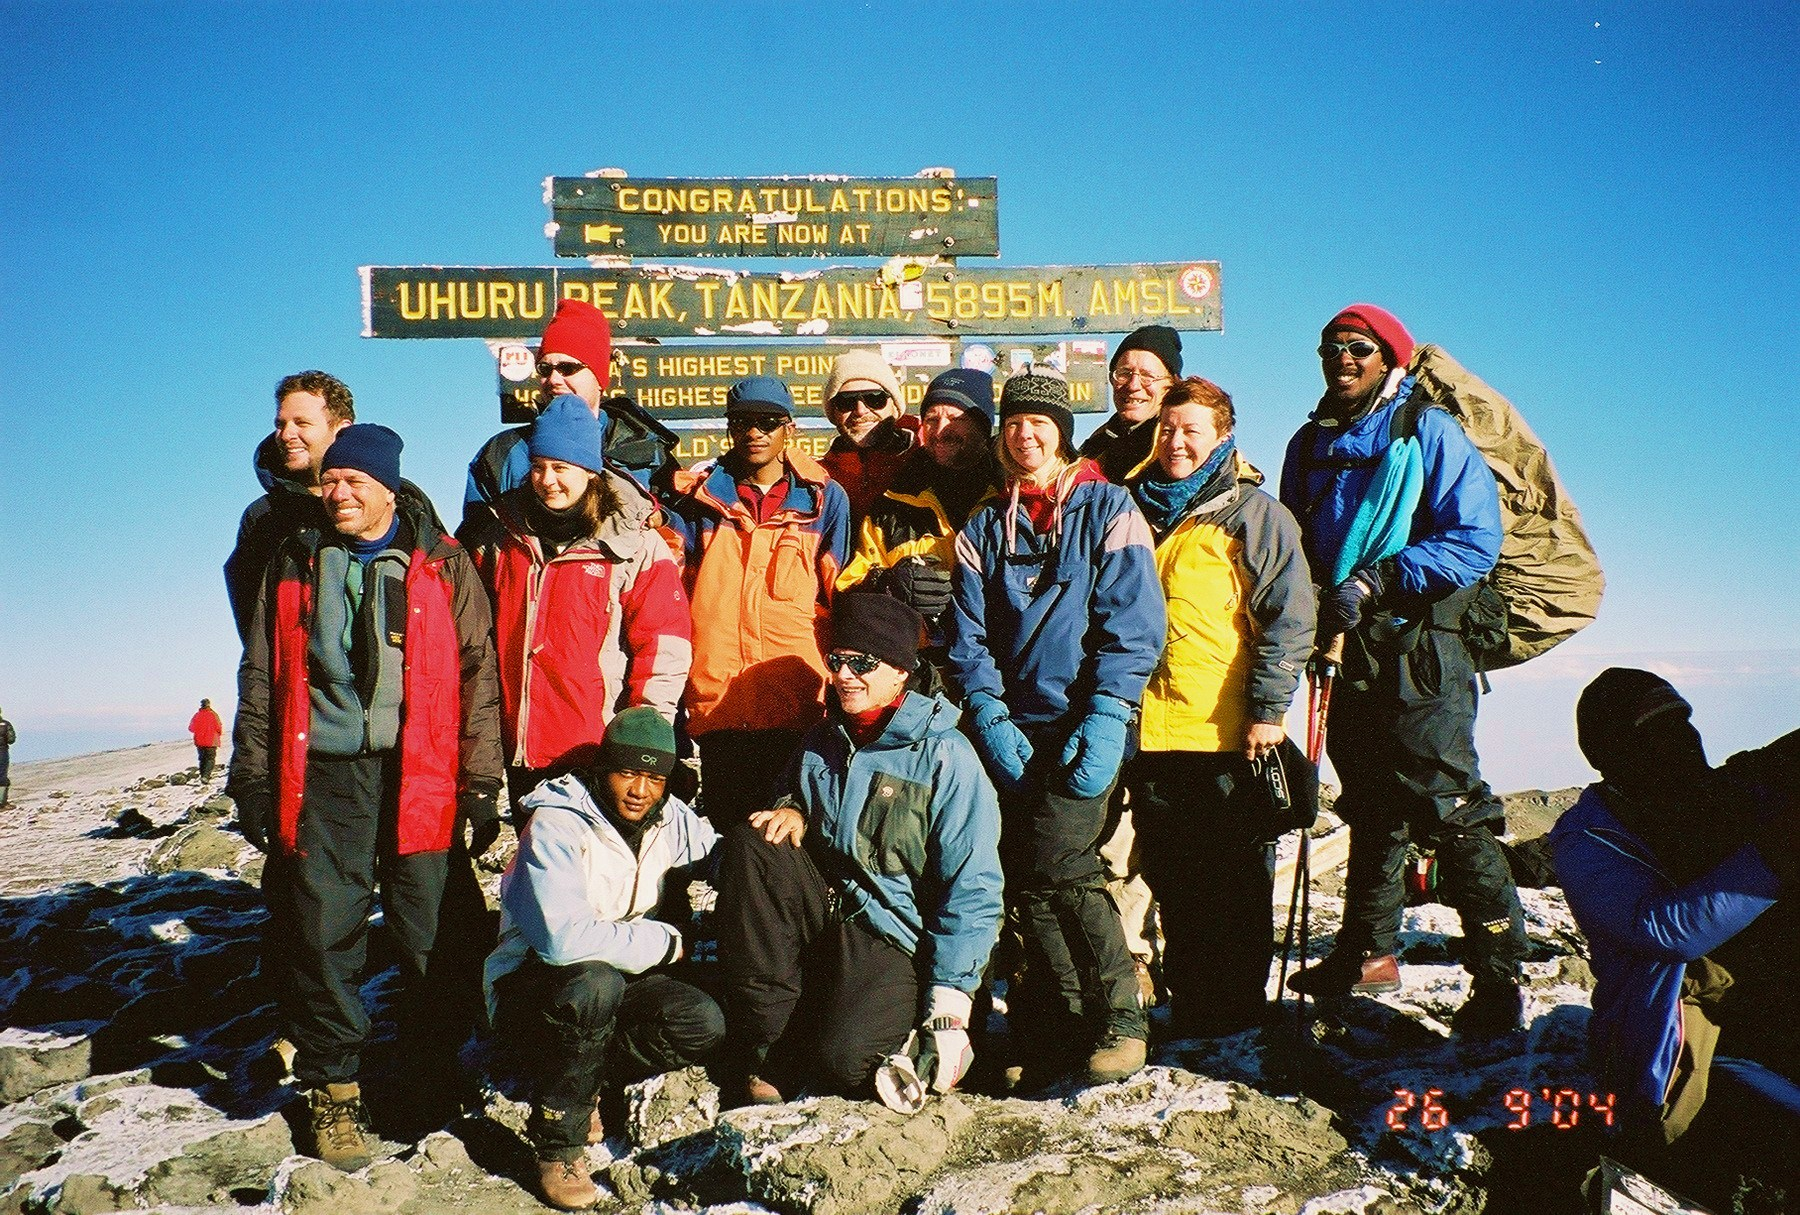 Our group at the summit marker.